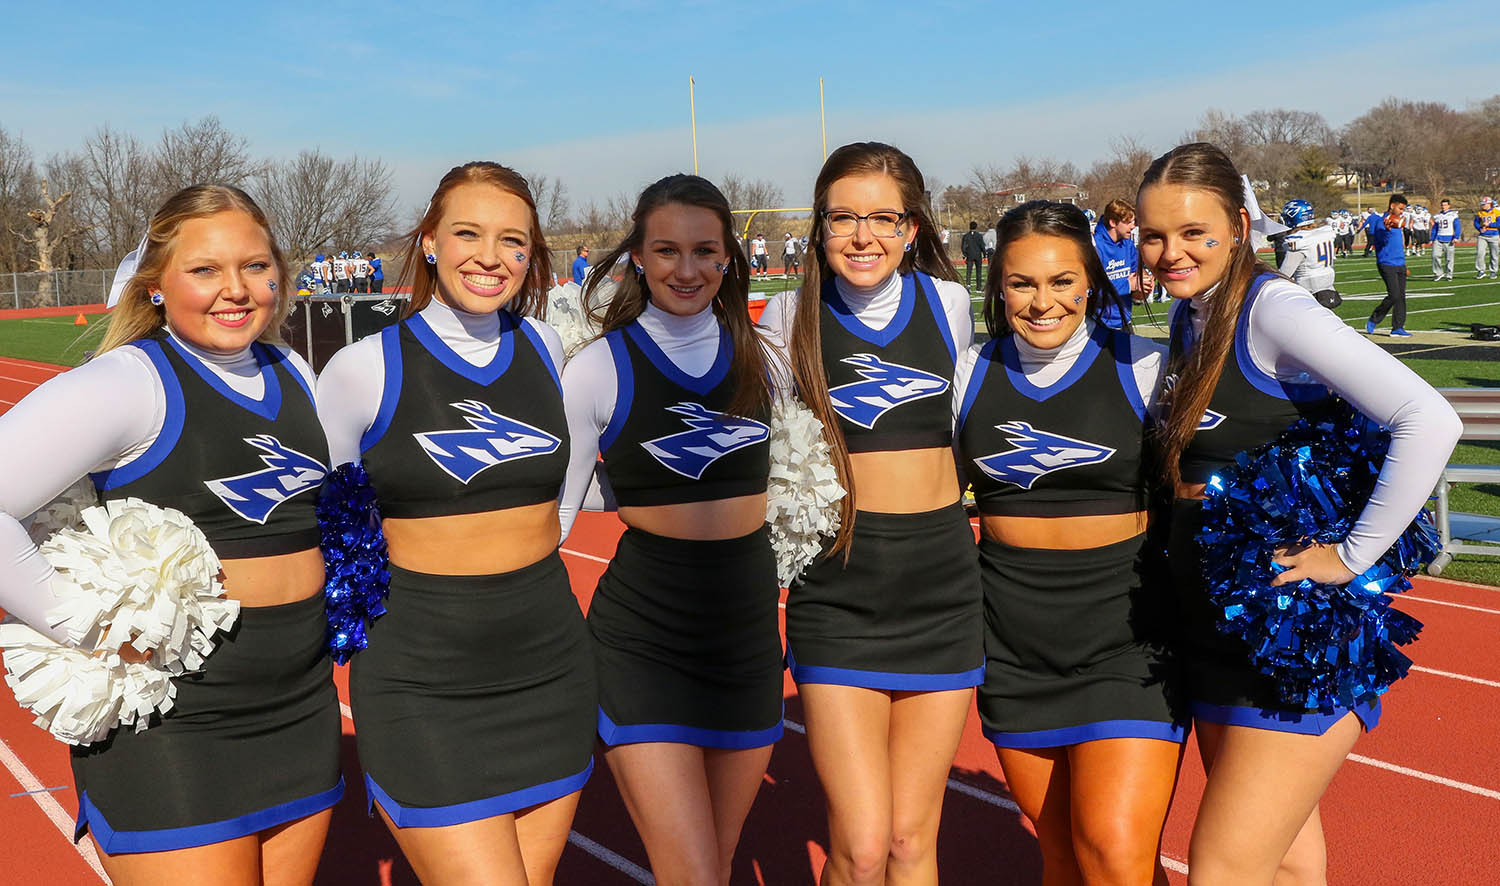 Krista Williams, third from right, and Fayth Jackson, second from right, were co-captains on the UNK cheer team before Williams graduated in May and became the head coach.